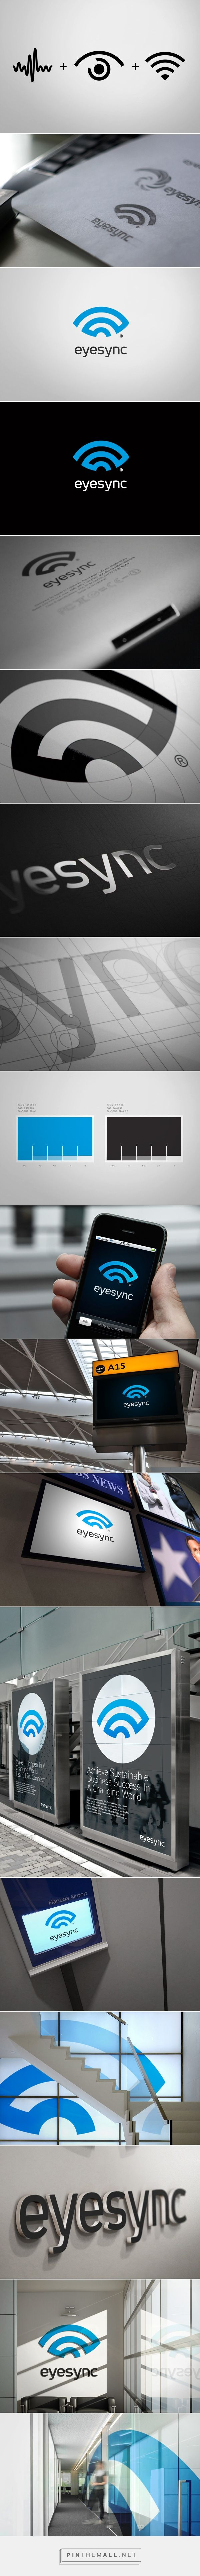 EyeSync Branding on Behance... - a grouped images picture - Pin Them All